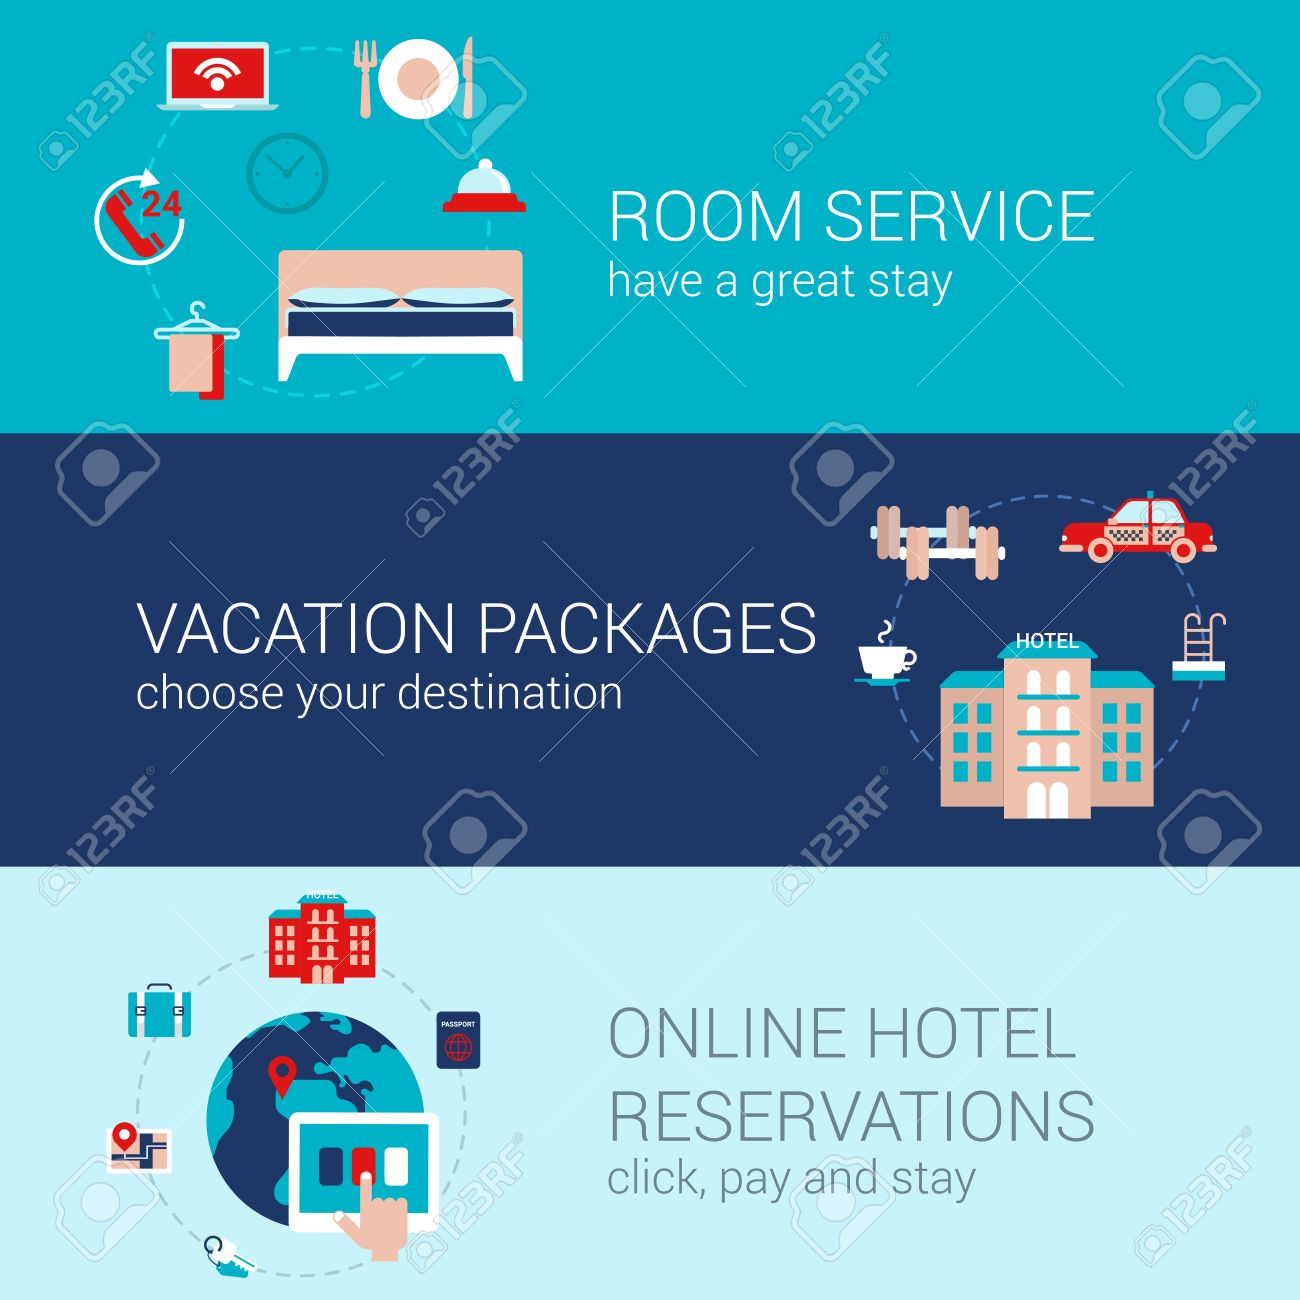 Hotel Booking Travel Business Concept Flat Icons Banners Template Set Room Service Vacation Tourism Packages Online